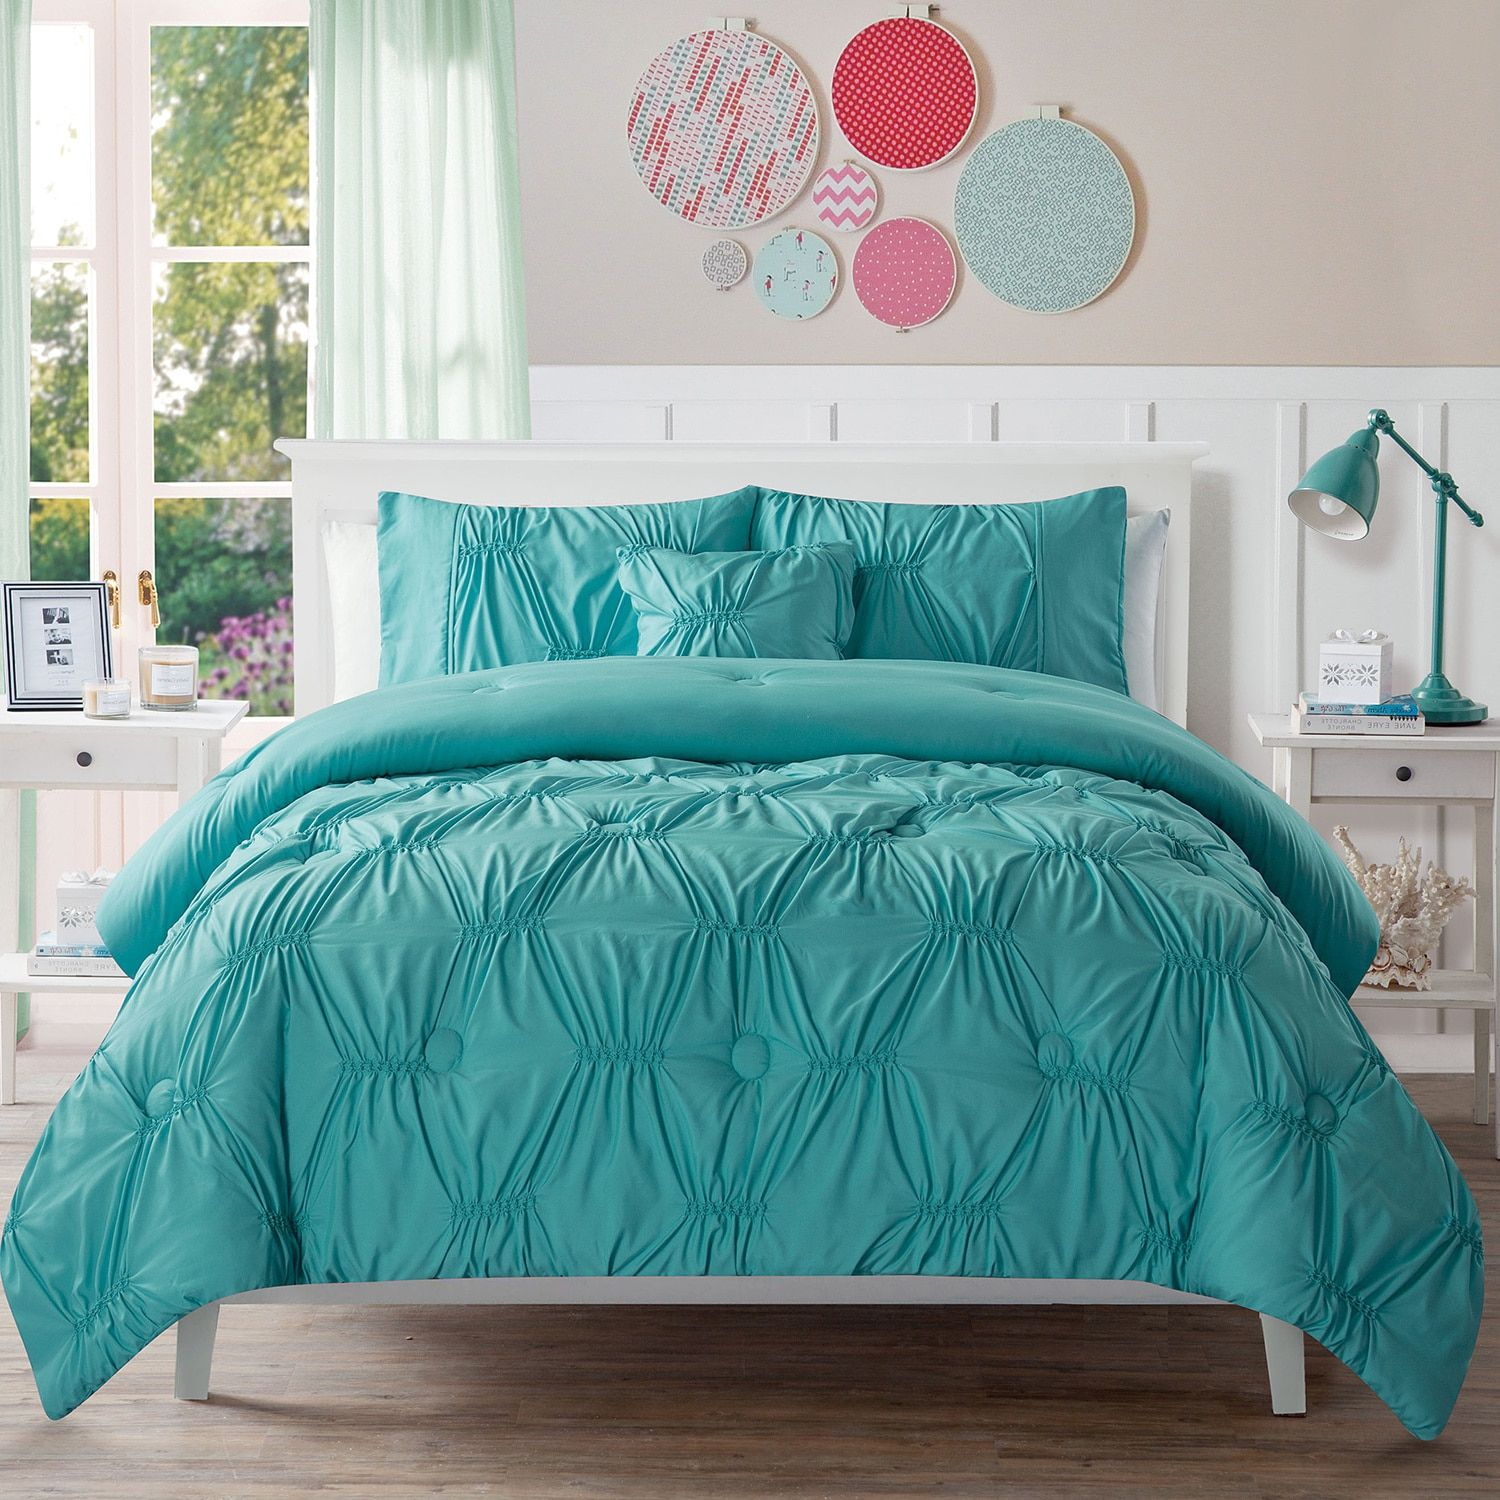 product cotton overstock navy bed febd today free aport comforter set bedding bath com nautica shipping